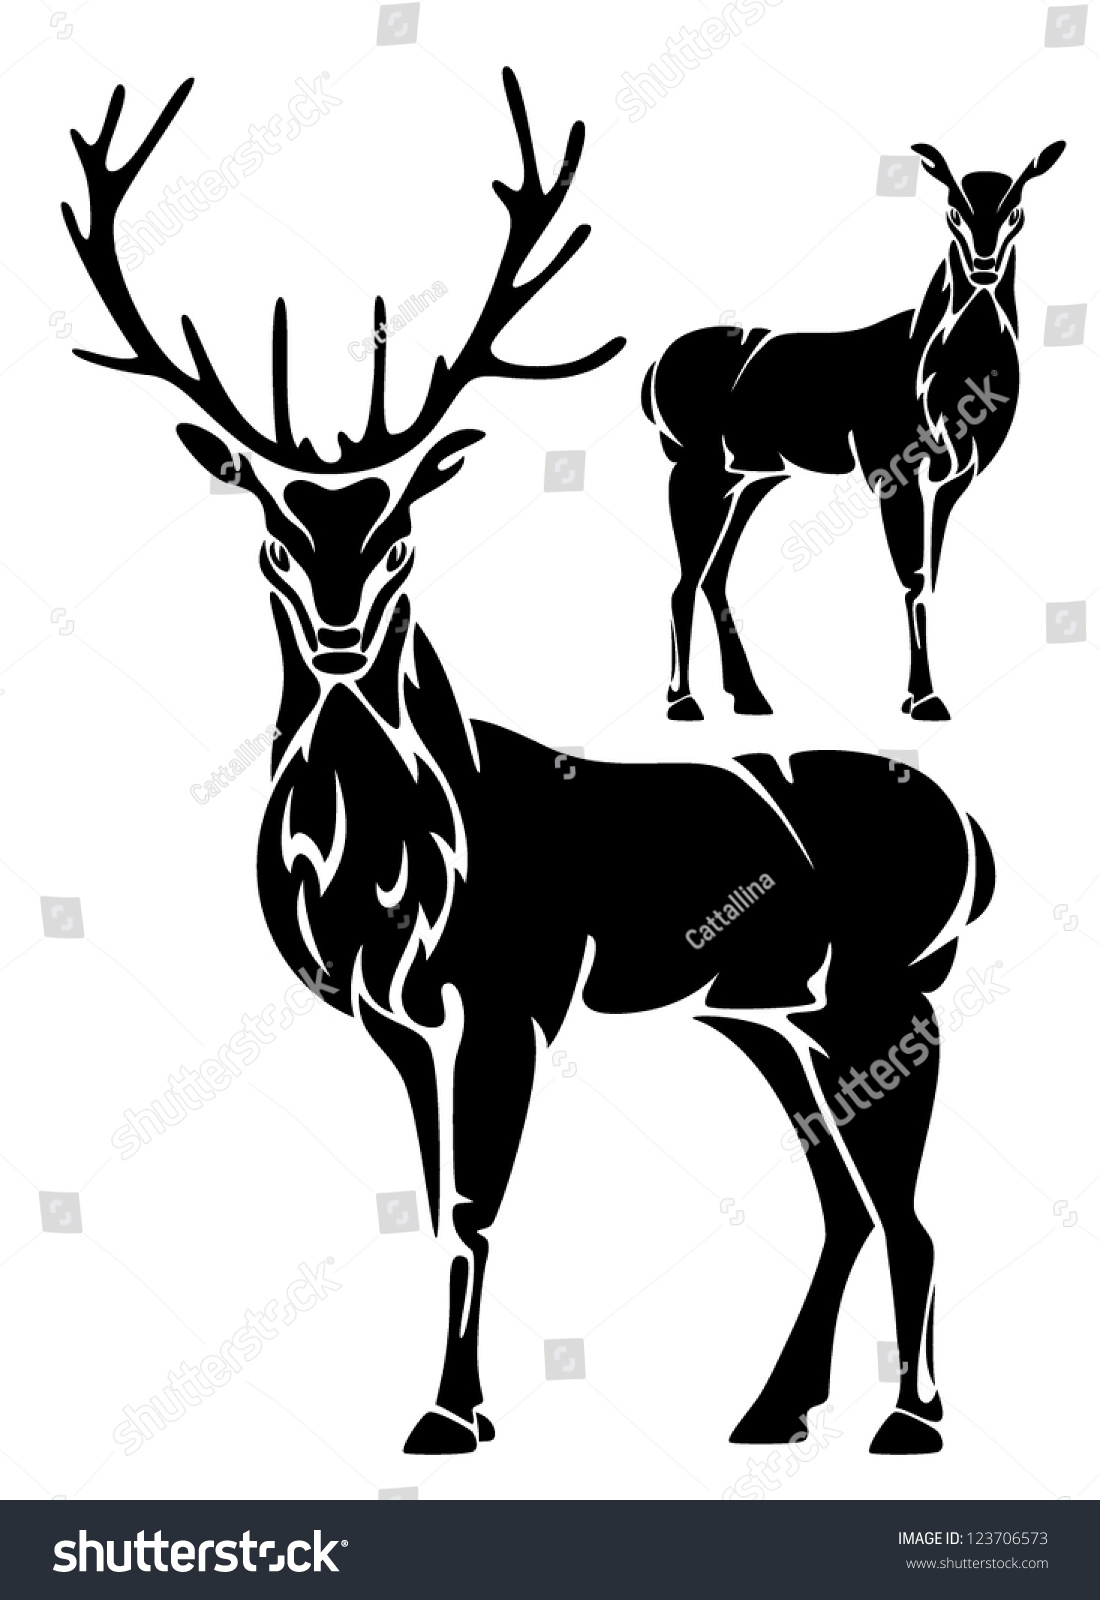 Deer illustration black and white - photo#6